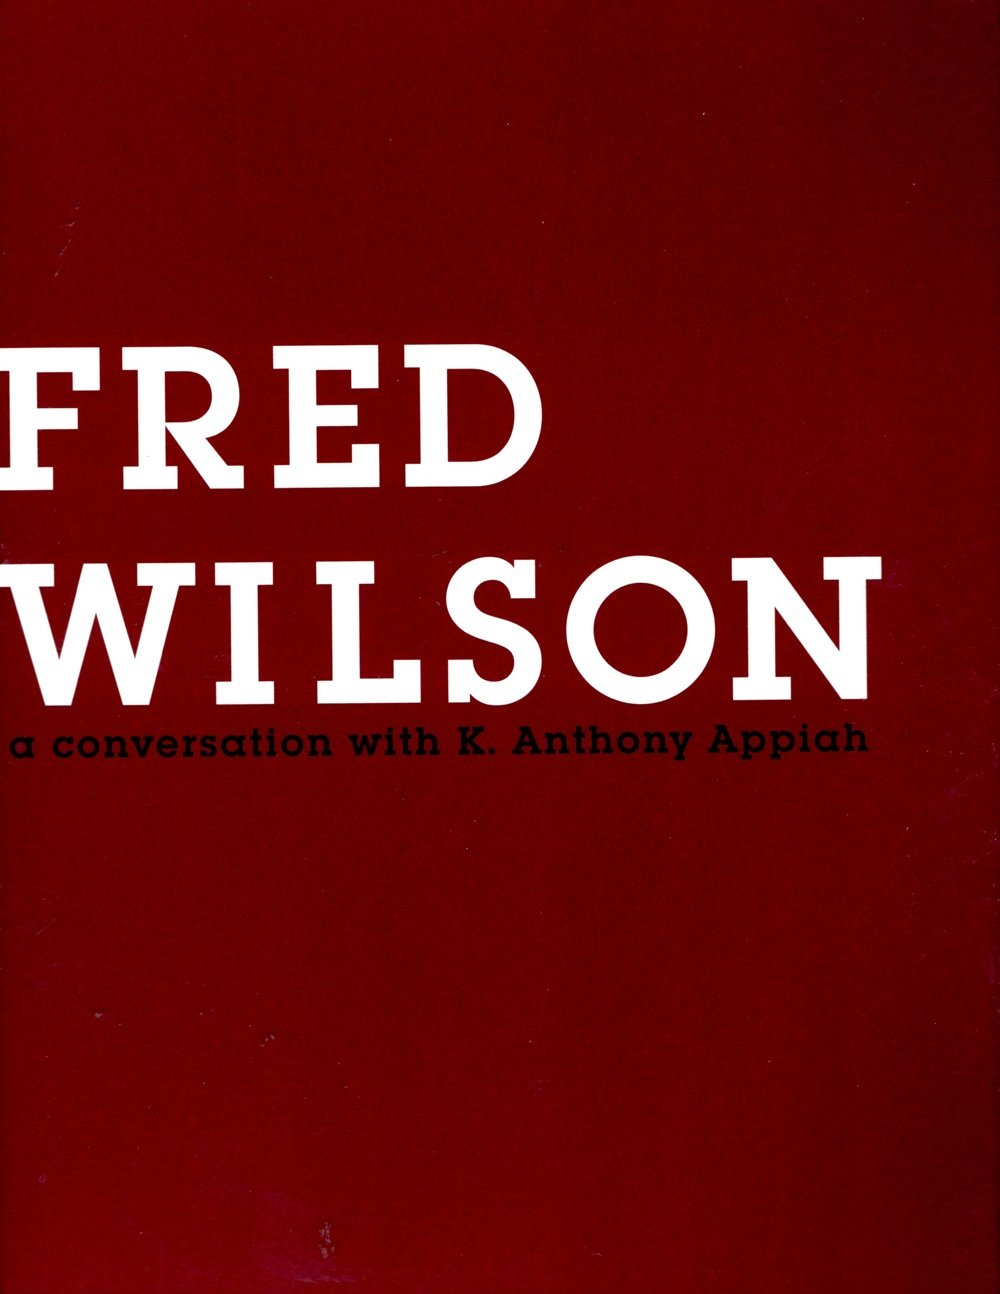 Fred Wilson: A Conversation with K. Anthony Appiah pdf